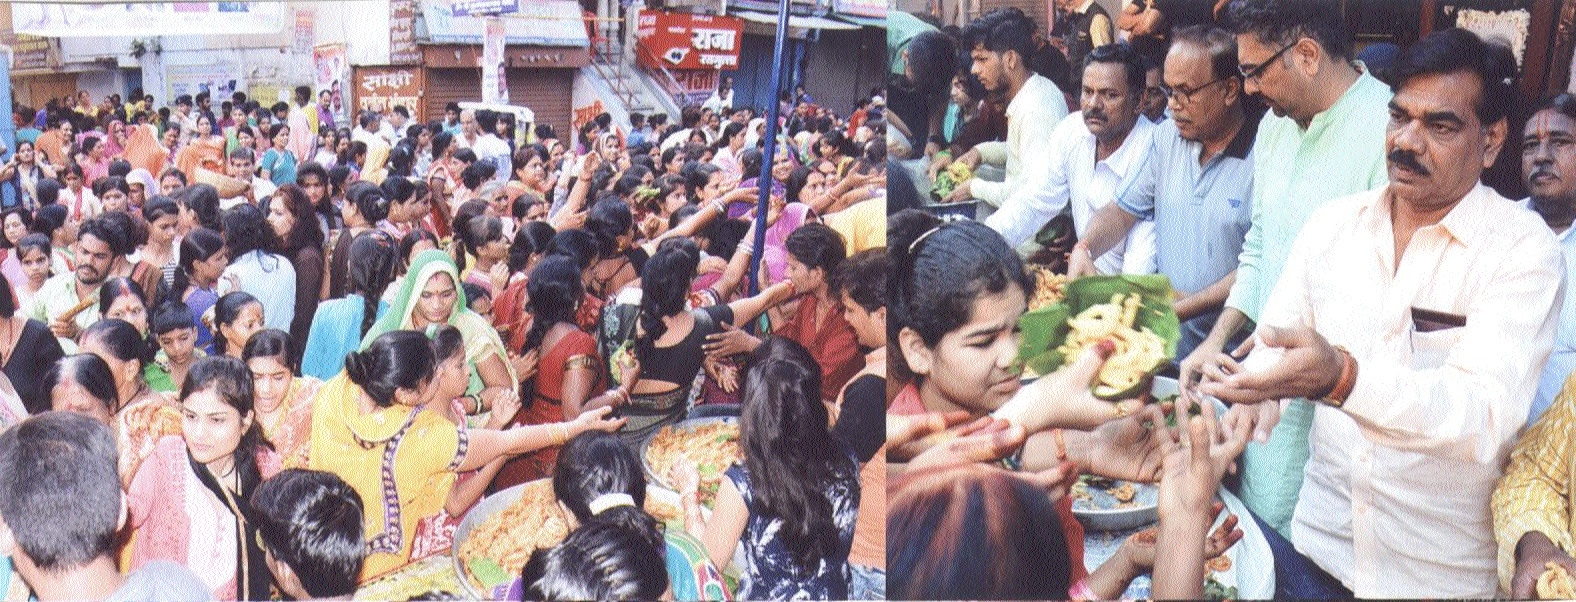 Women end Hartalika fast with sweets